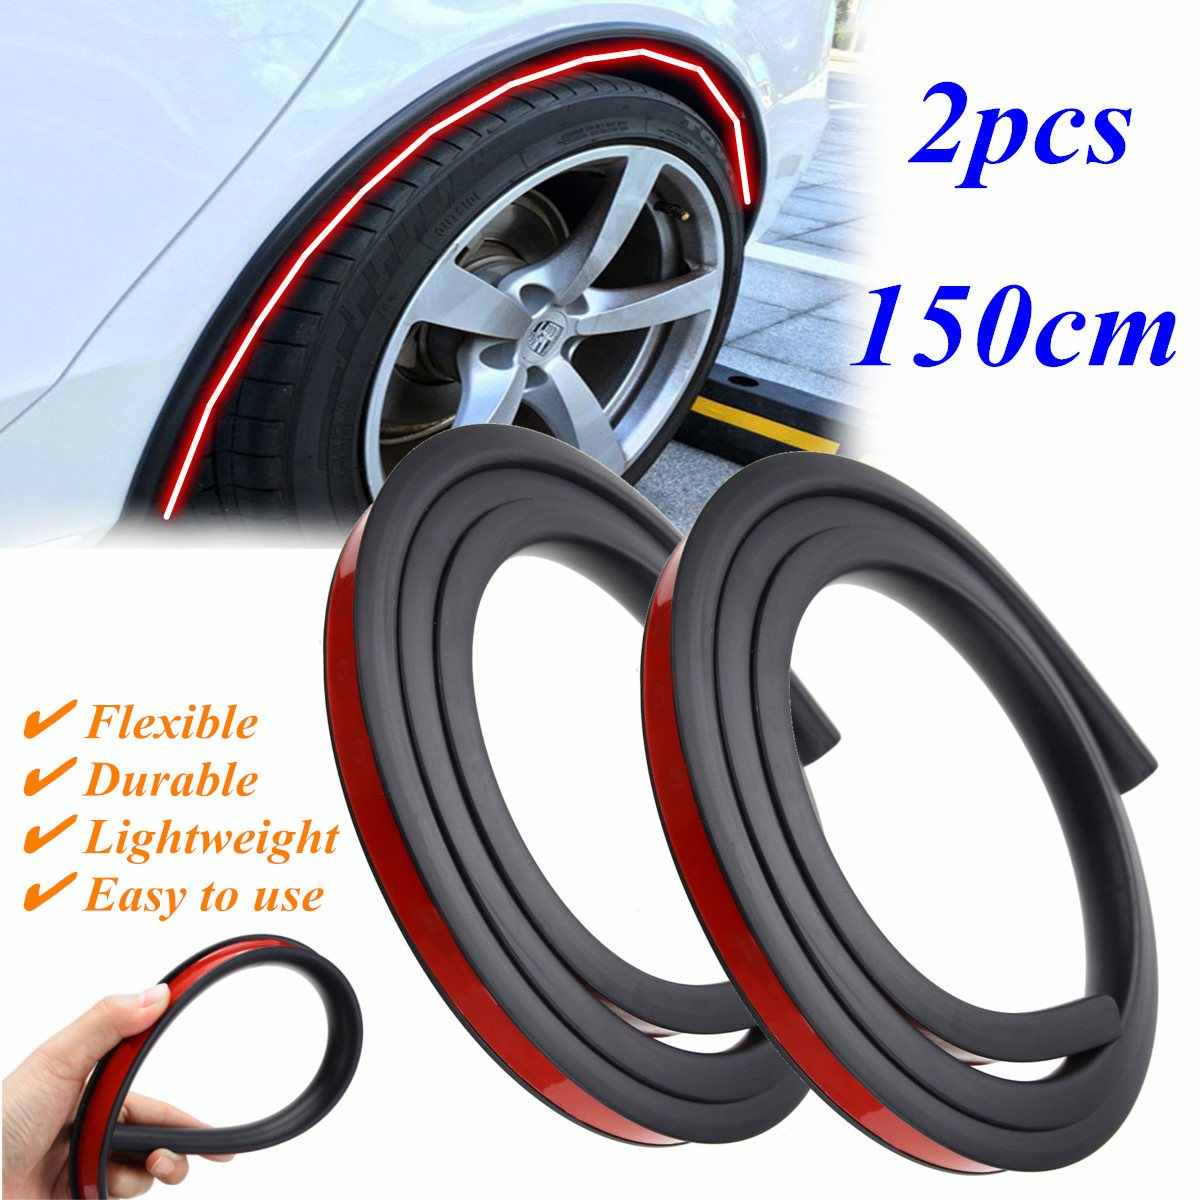 Queenbox 2pcs Car Wheel Eyebrow Arch Fender Flares Auto Mud Guard Protector Decorative Strips,Black